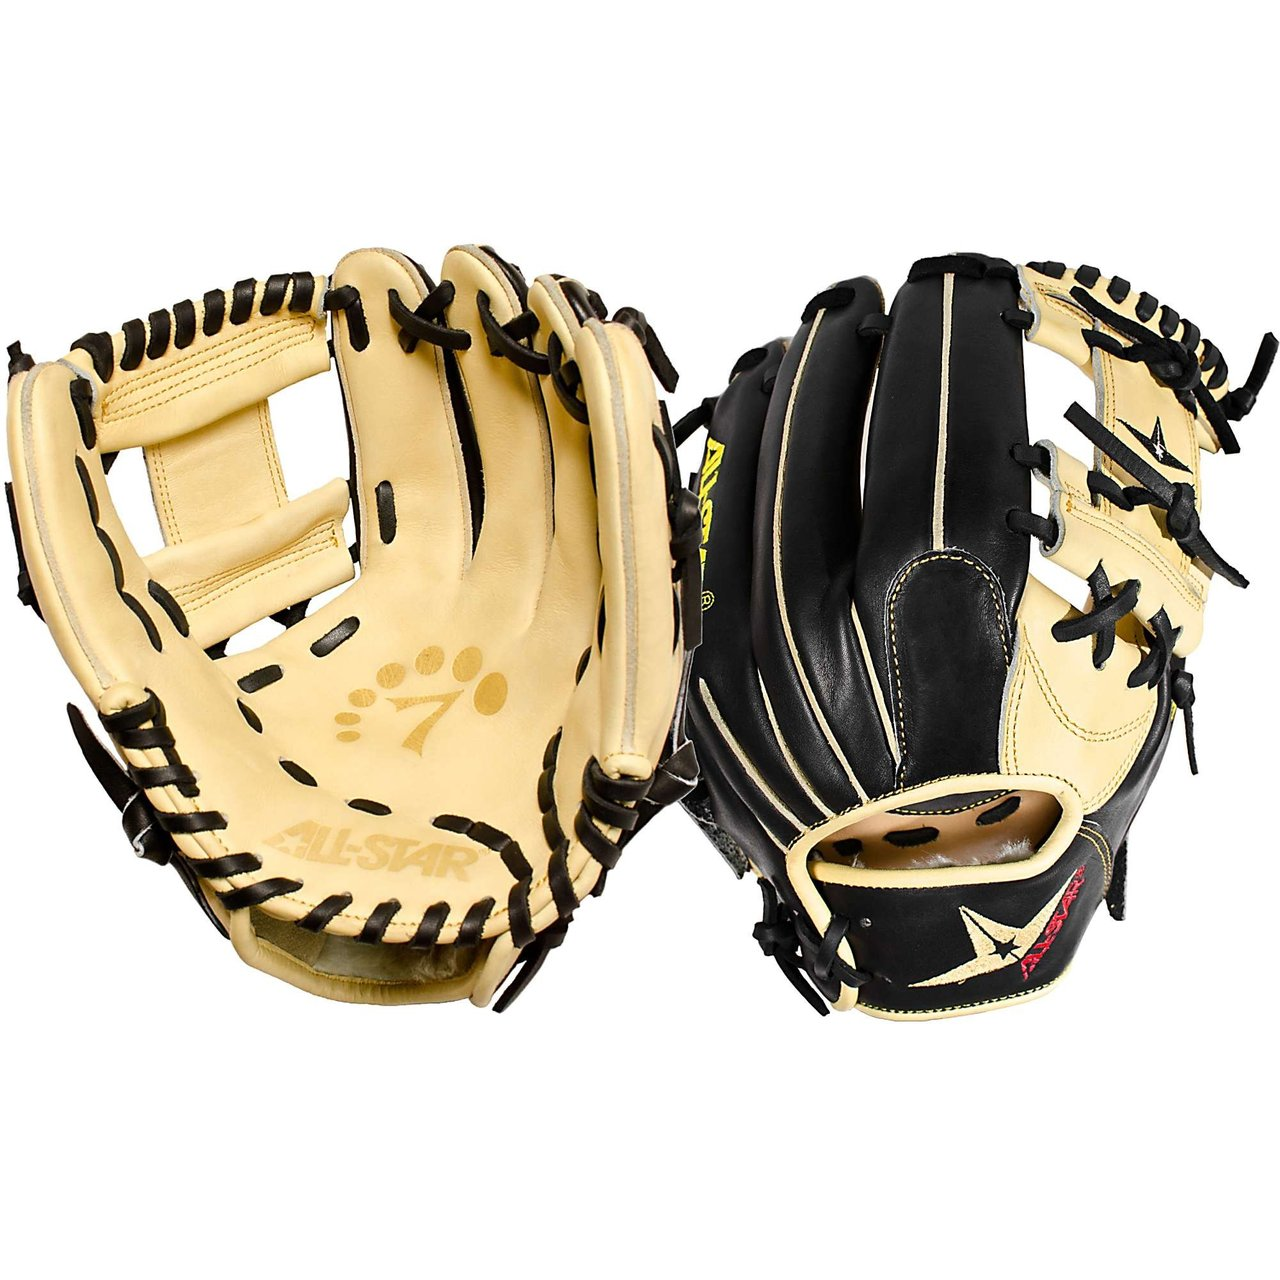 all-star-system-seven-baseball-glove-11-5-inch-right-handed-throw FGS7-IF-Right Handed Throw All-Star 029343027277 All Star System Seven Baseball Glove 11.5 Inch Right Handed Throw